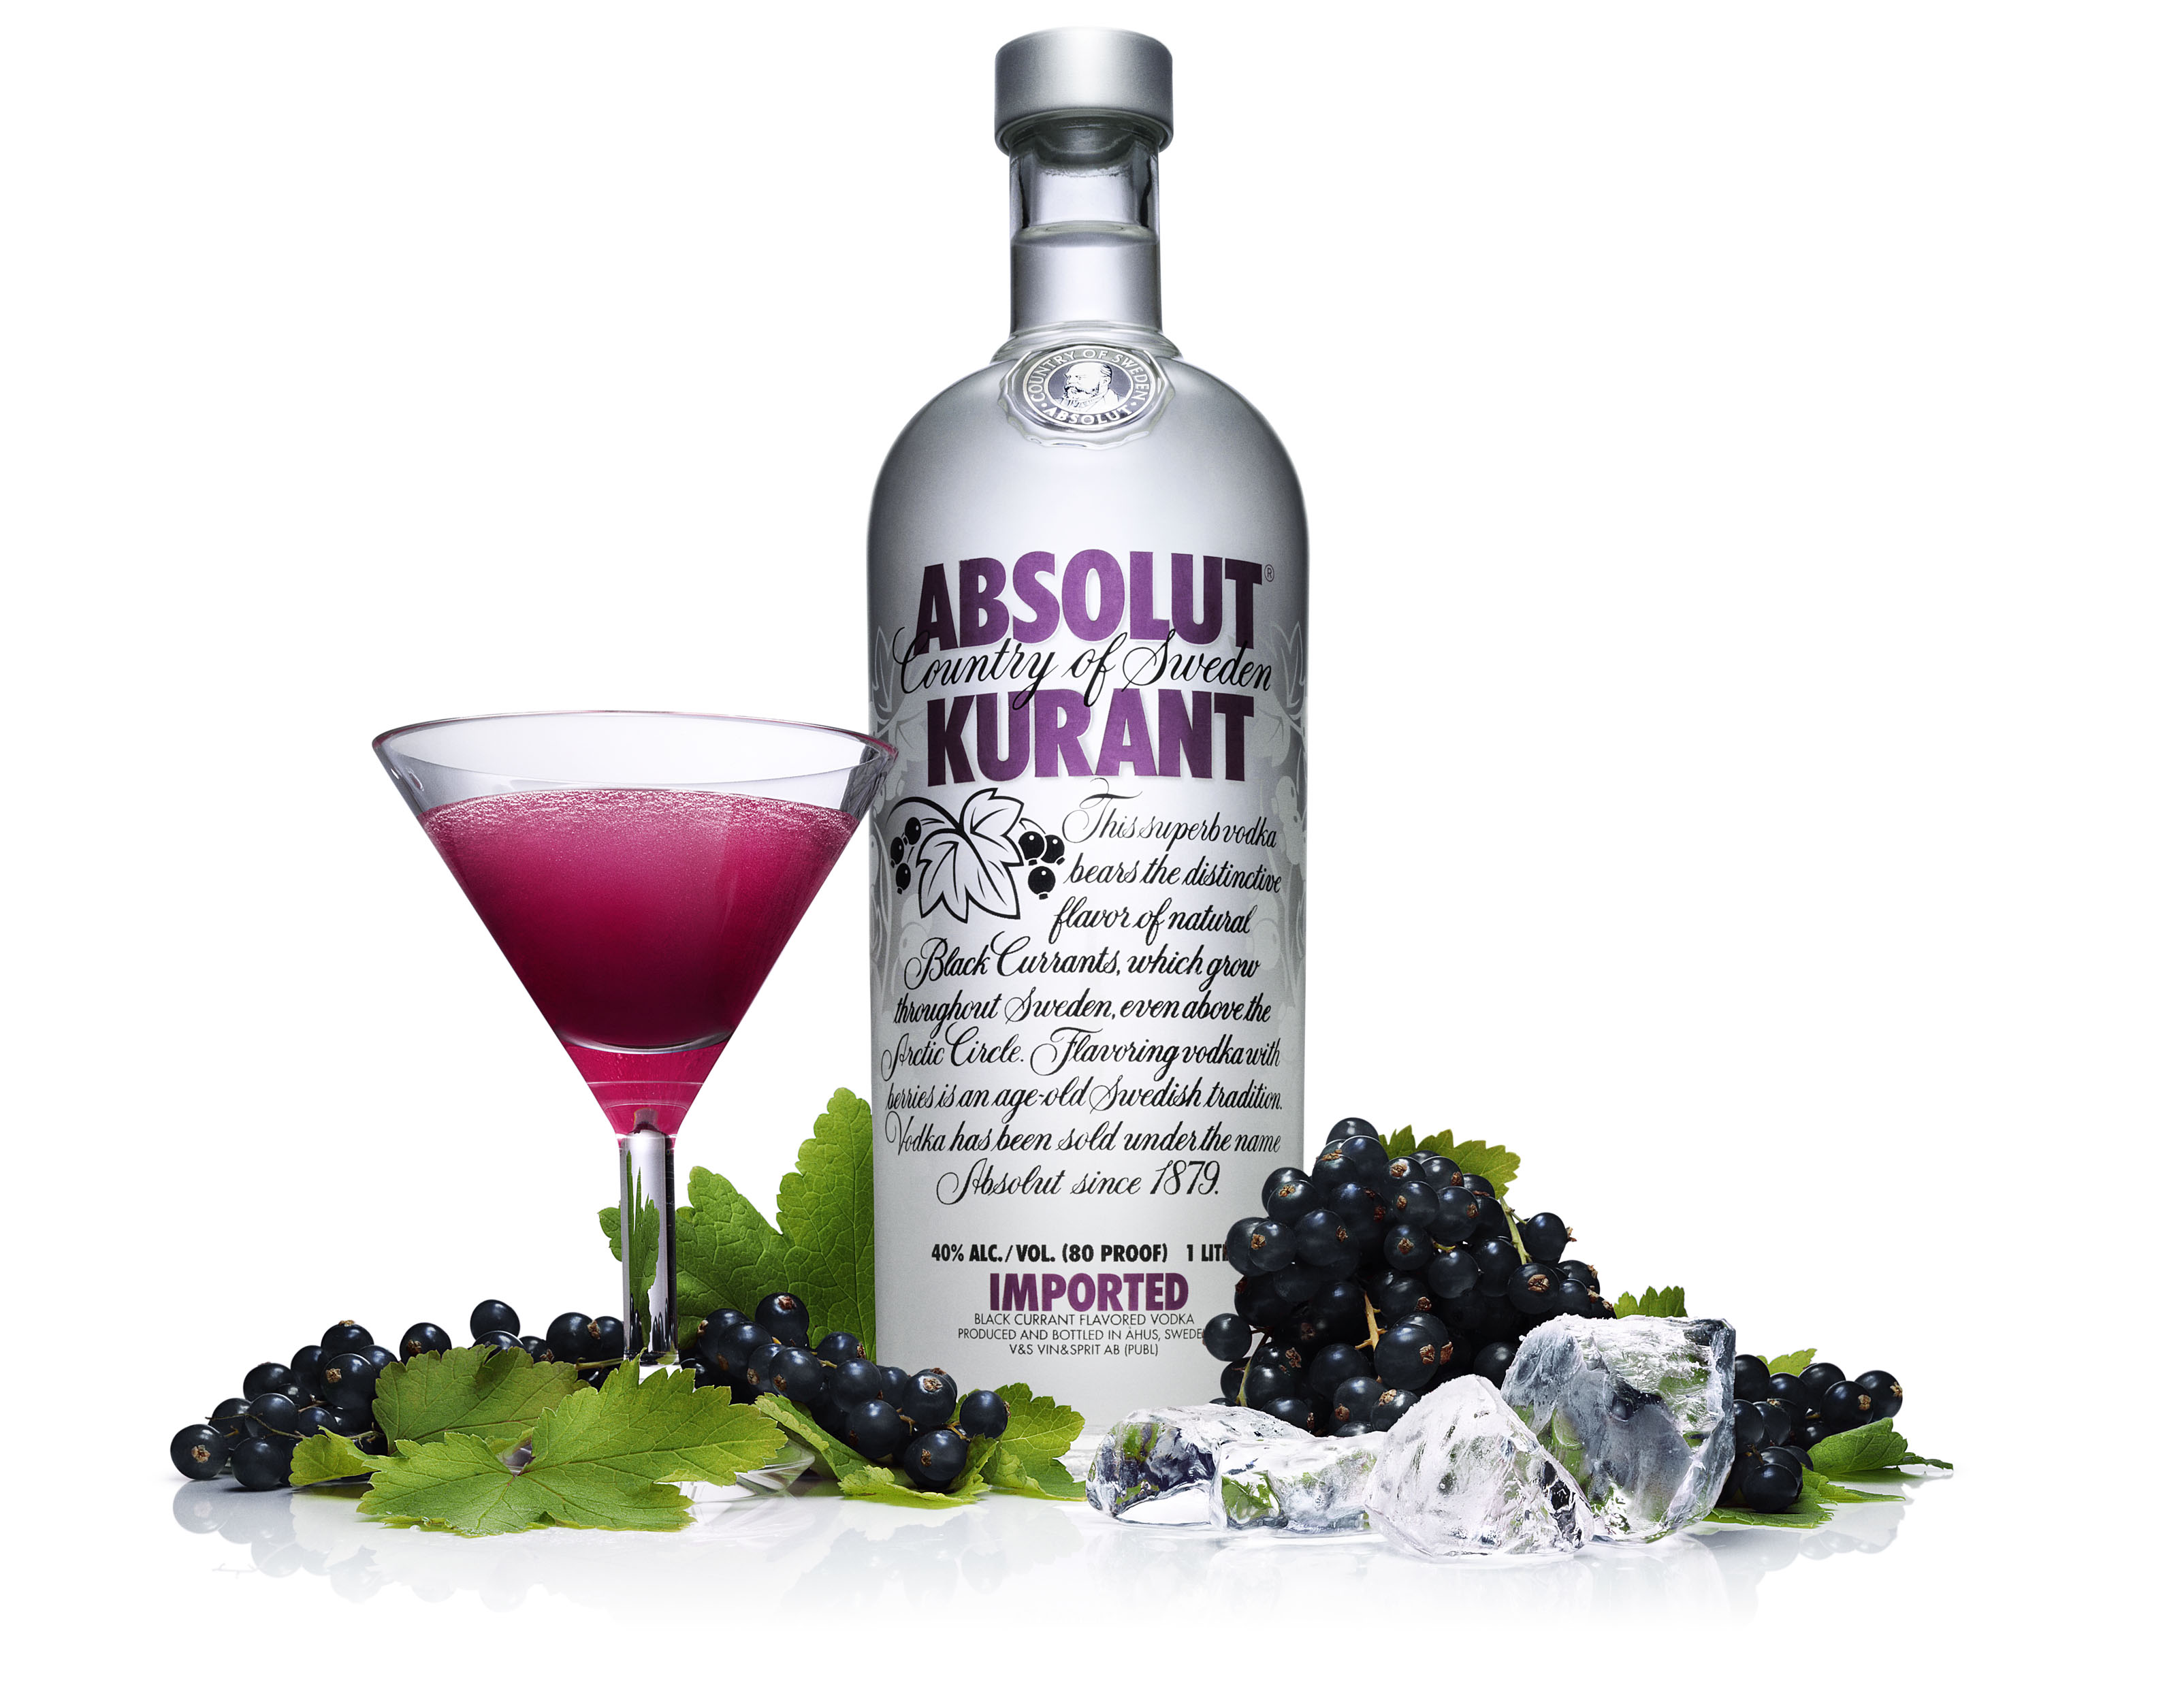 jensmortensen-absolut-vodka-84435954